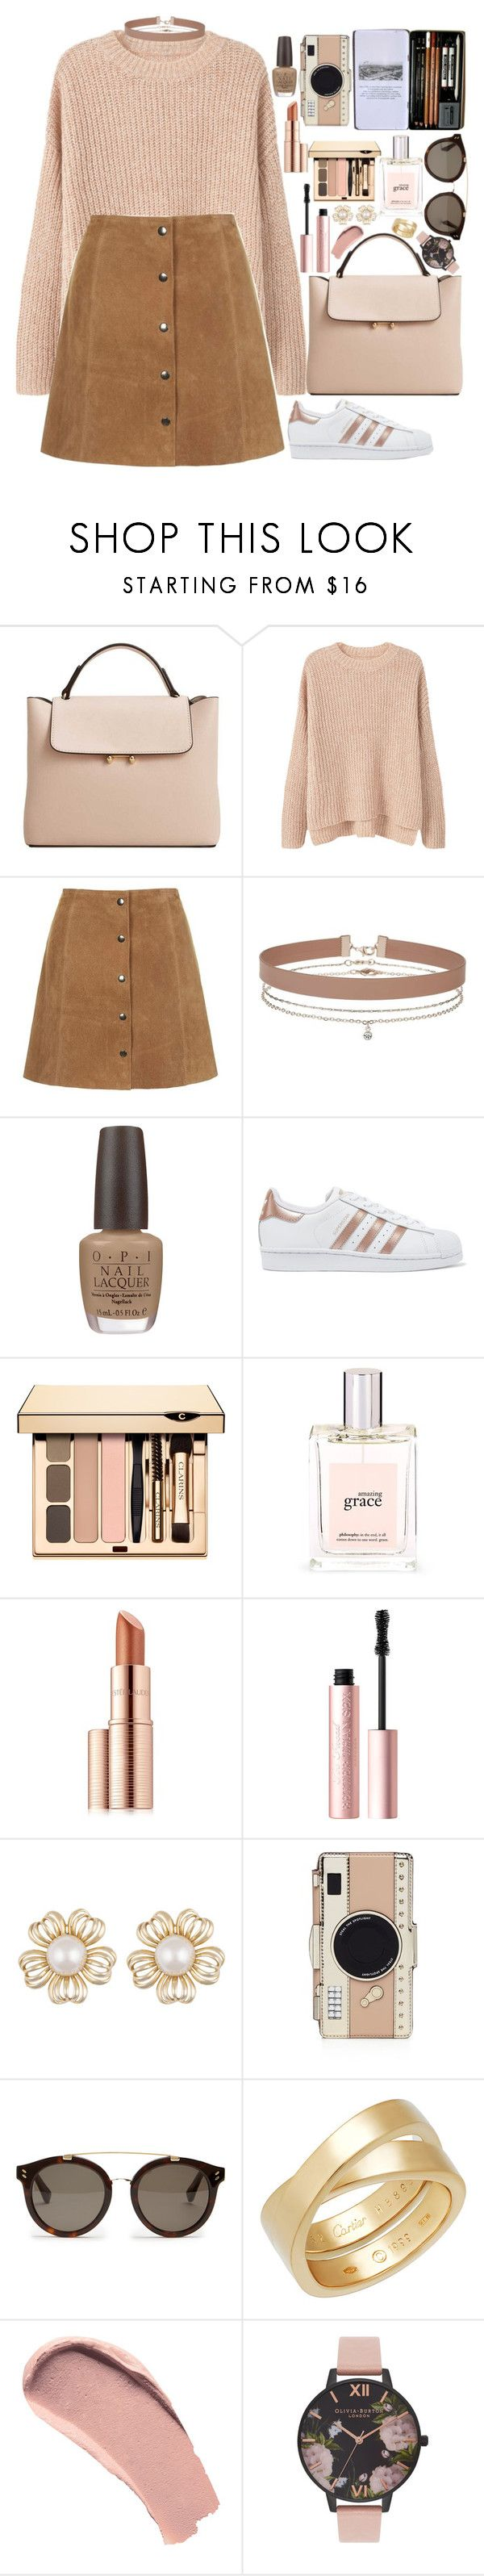 """""""❤"""" by polinachaban ❤ liked on Polyvore featuring MANGO, Topshop, Miss Selfridge, OPI, adidas Originals, philosophy, Estée Lauder, Too Faced Cosmetics, Kate Spade and STELLA McCARTNEY"""